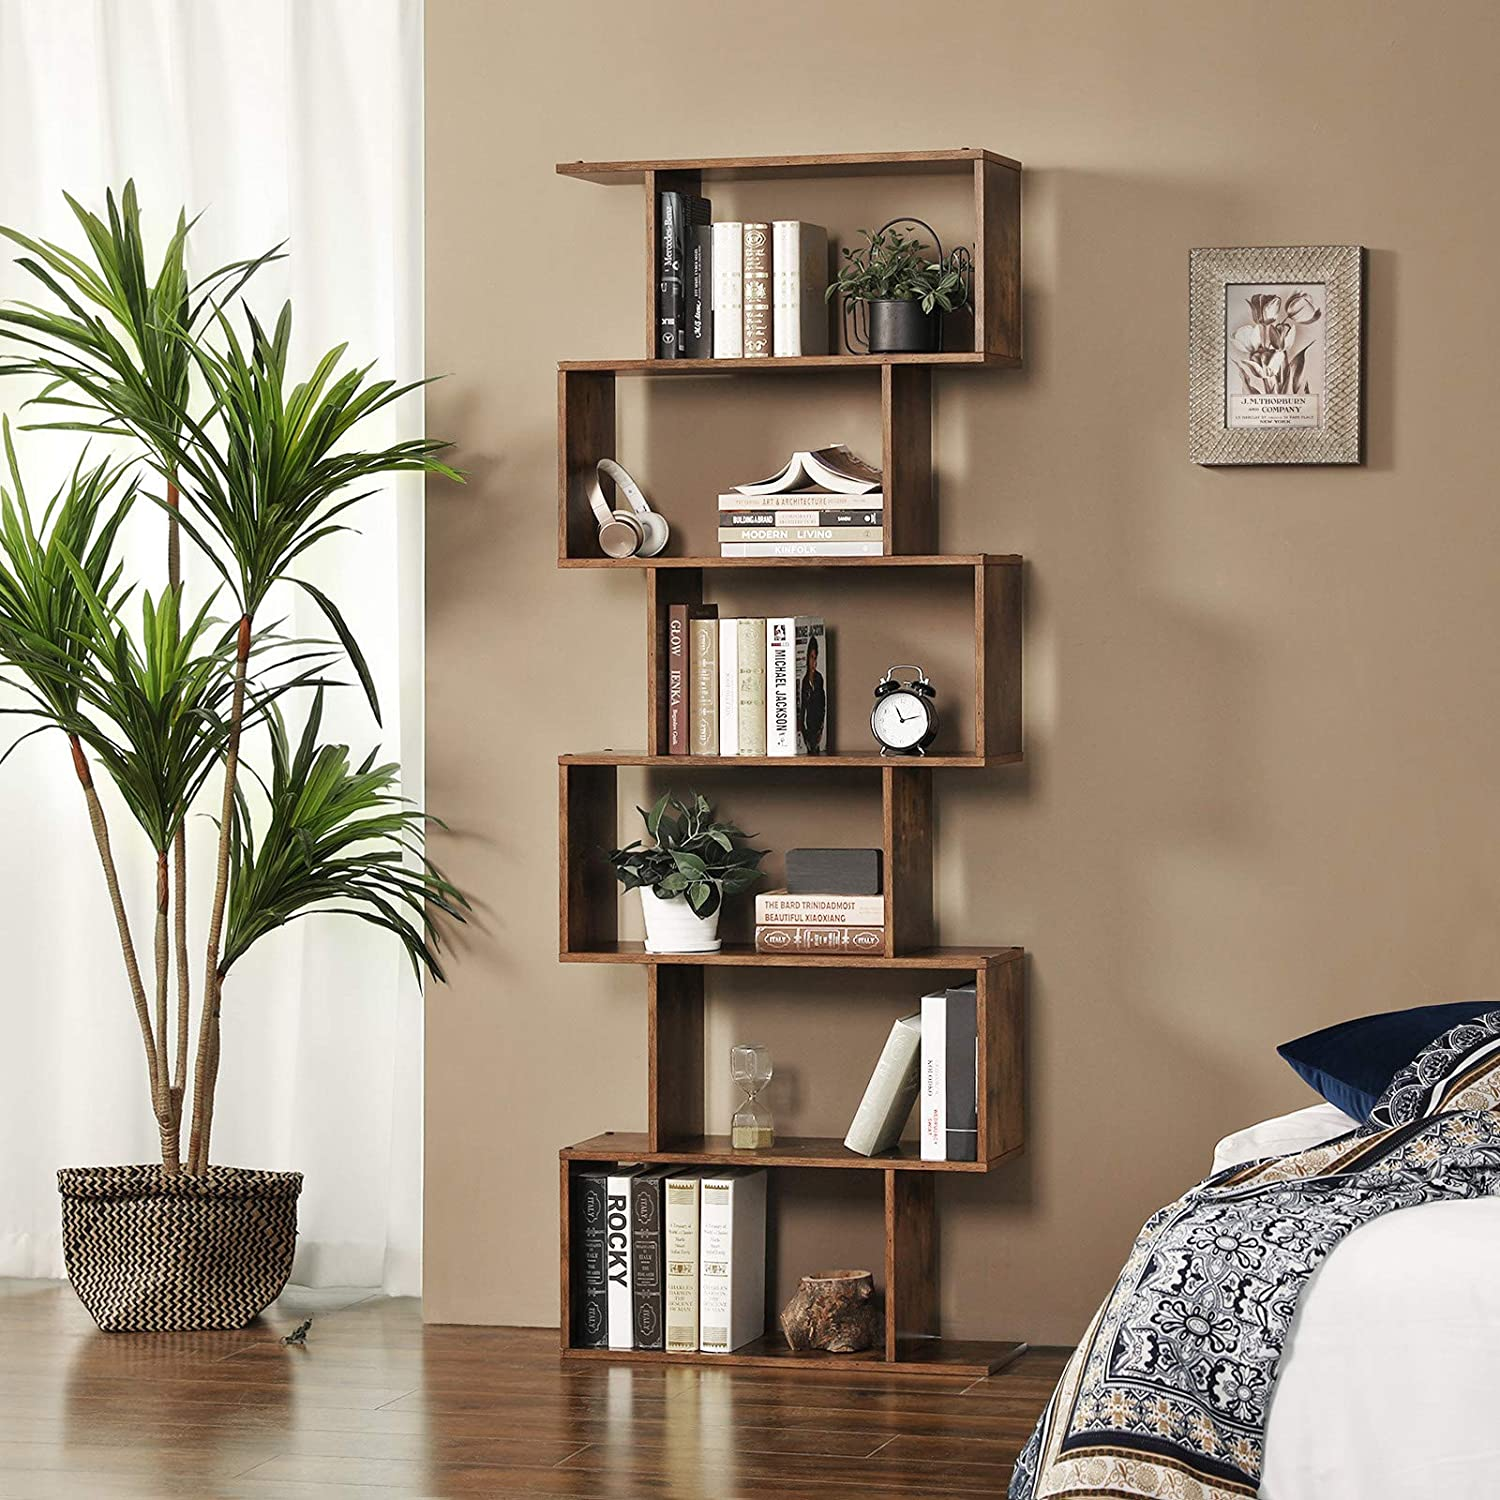 Modern Style Bookshelf  6 levels in wood in ambiance